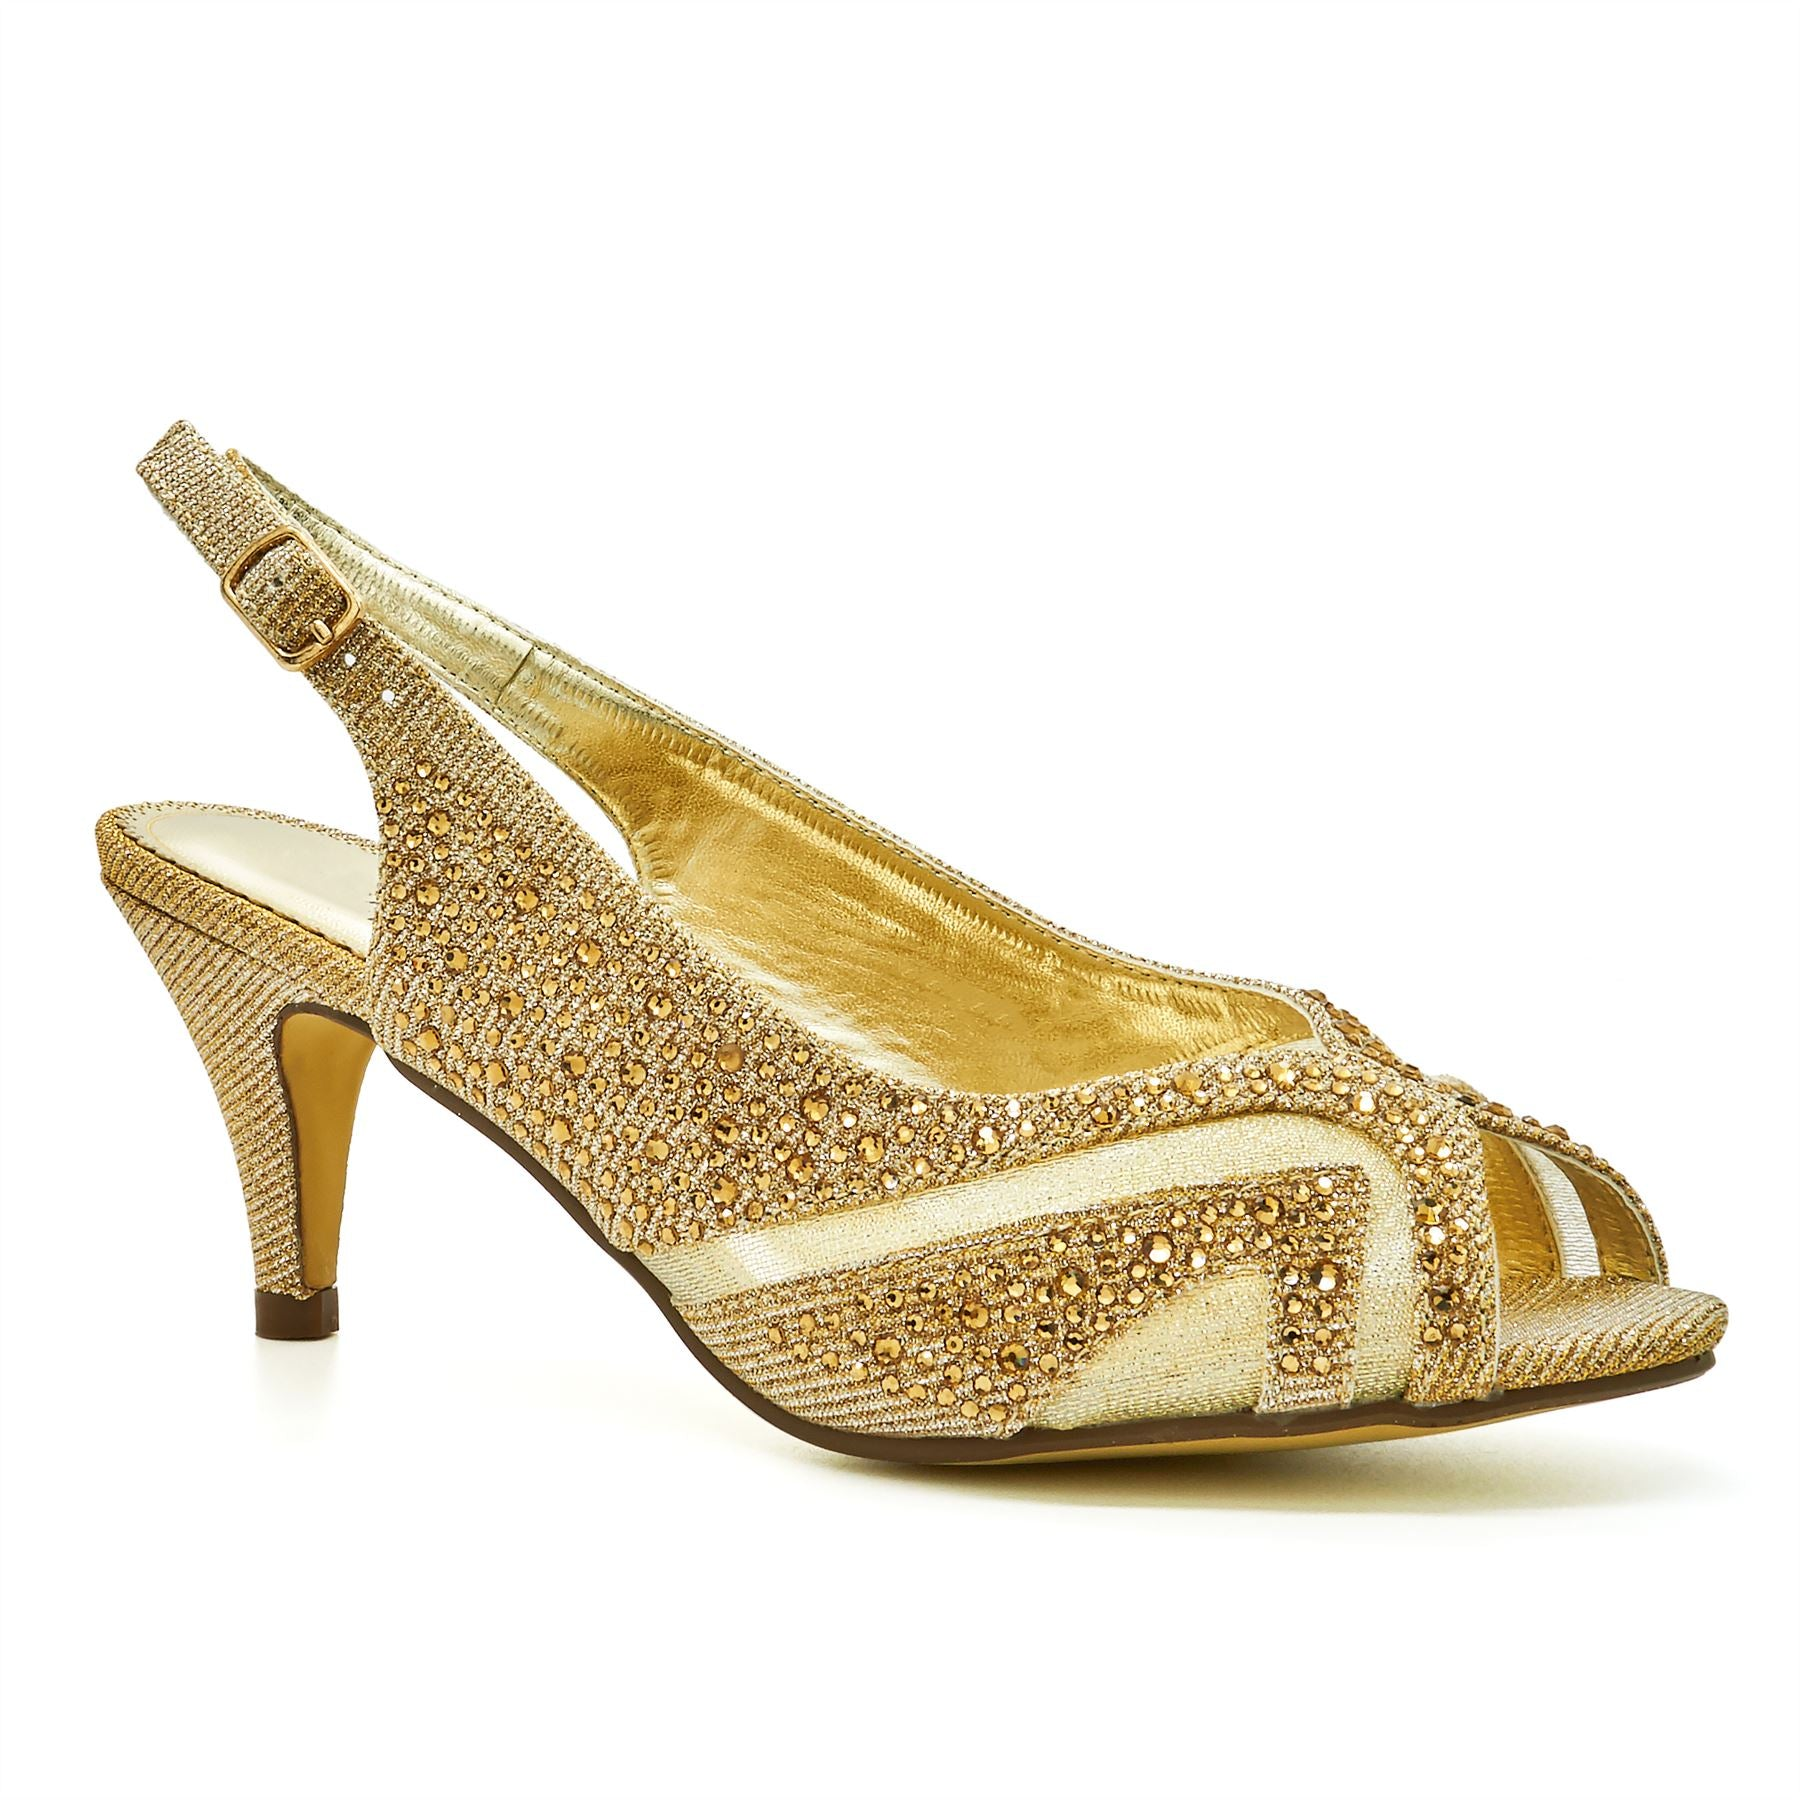 Gold Peep Toe Kitten Heeled Sandals